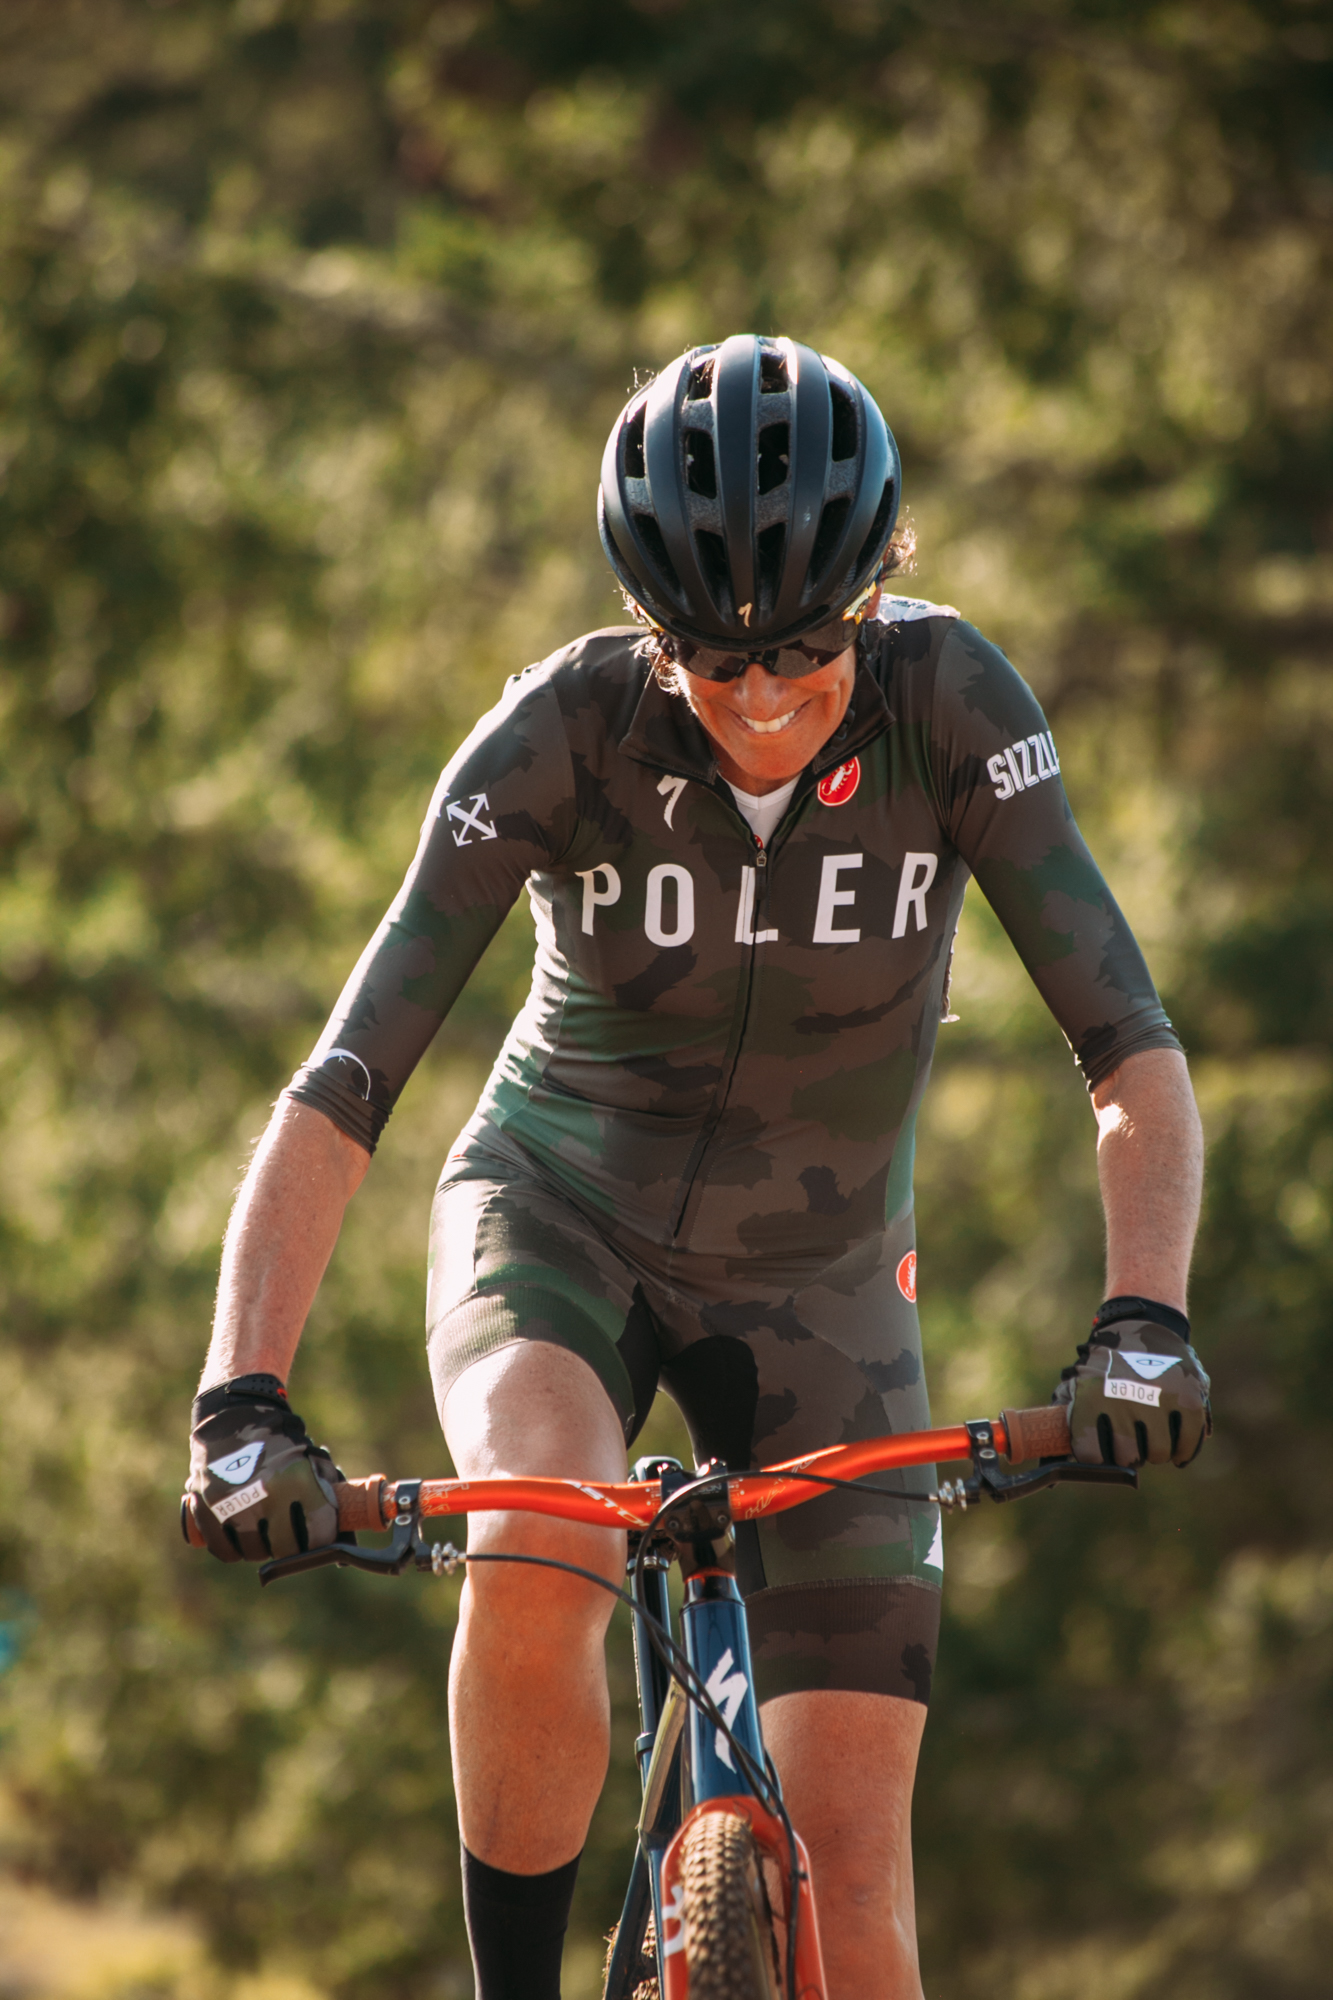 Cyclocross18_CCCX_RainierHS-190-mettlecycling.jpg